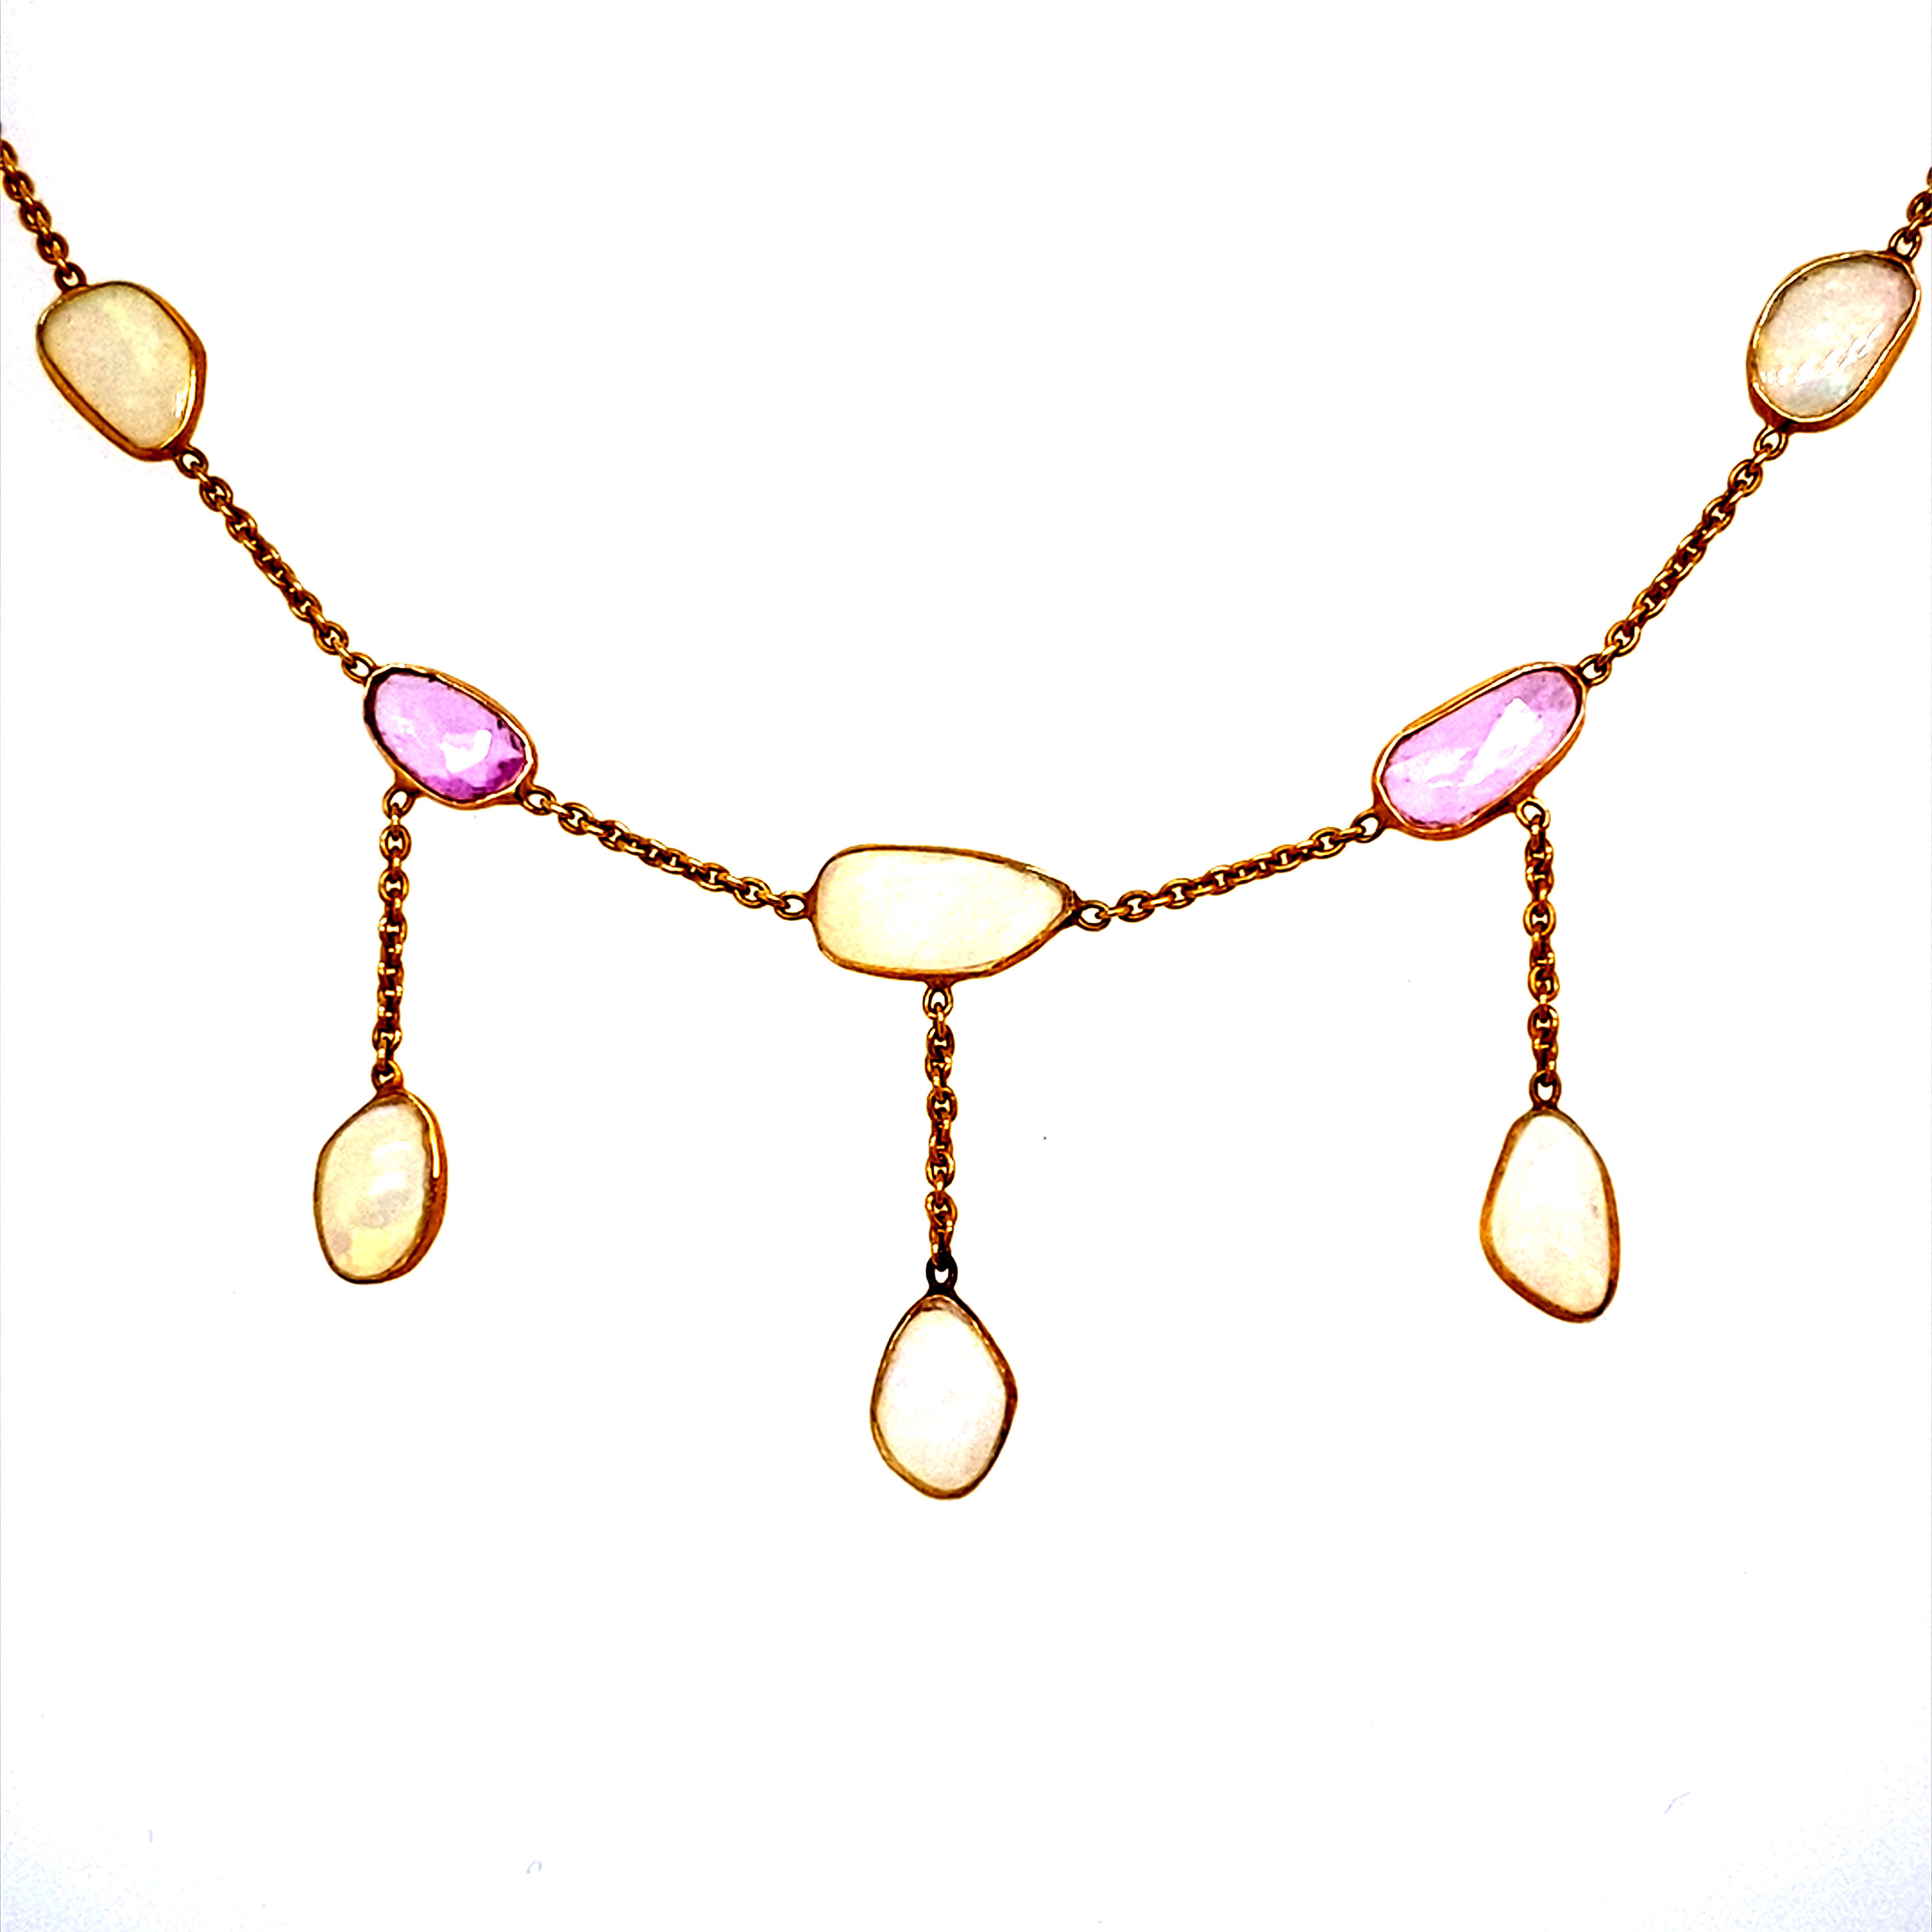 18 Carat Yellow Gold, Opal and Pink Sapphire Necklet